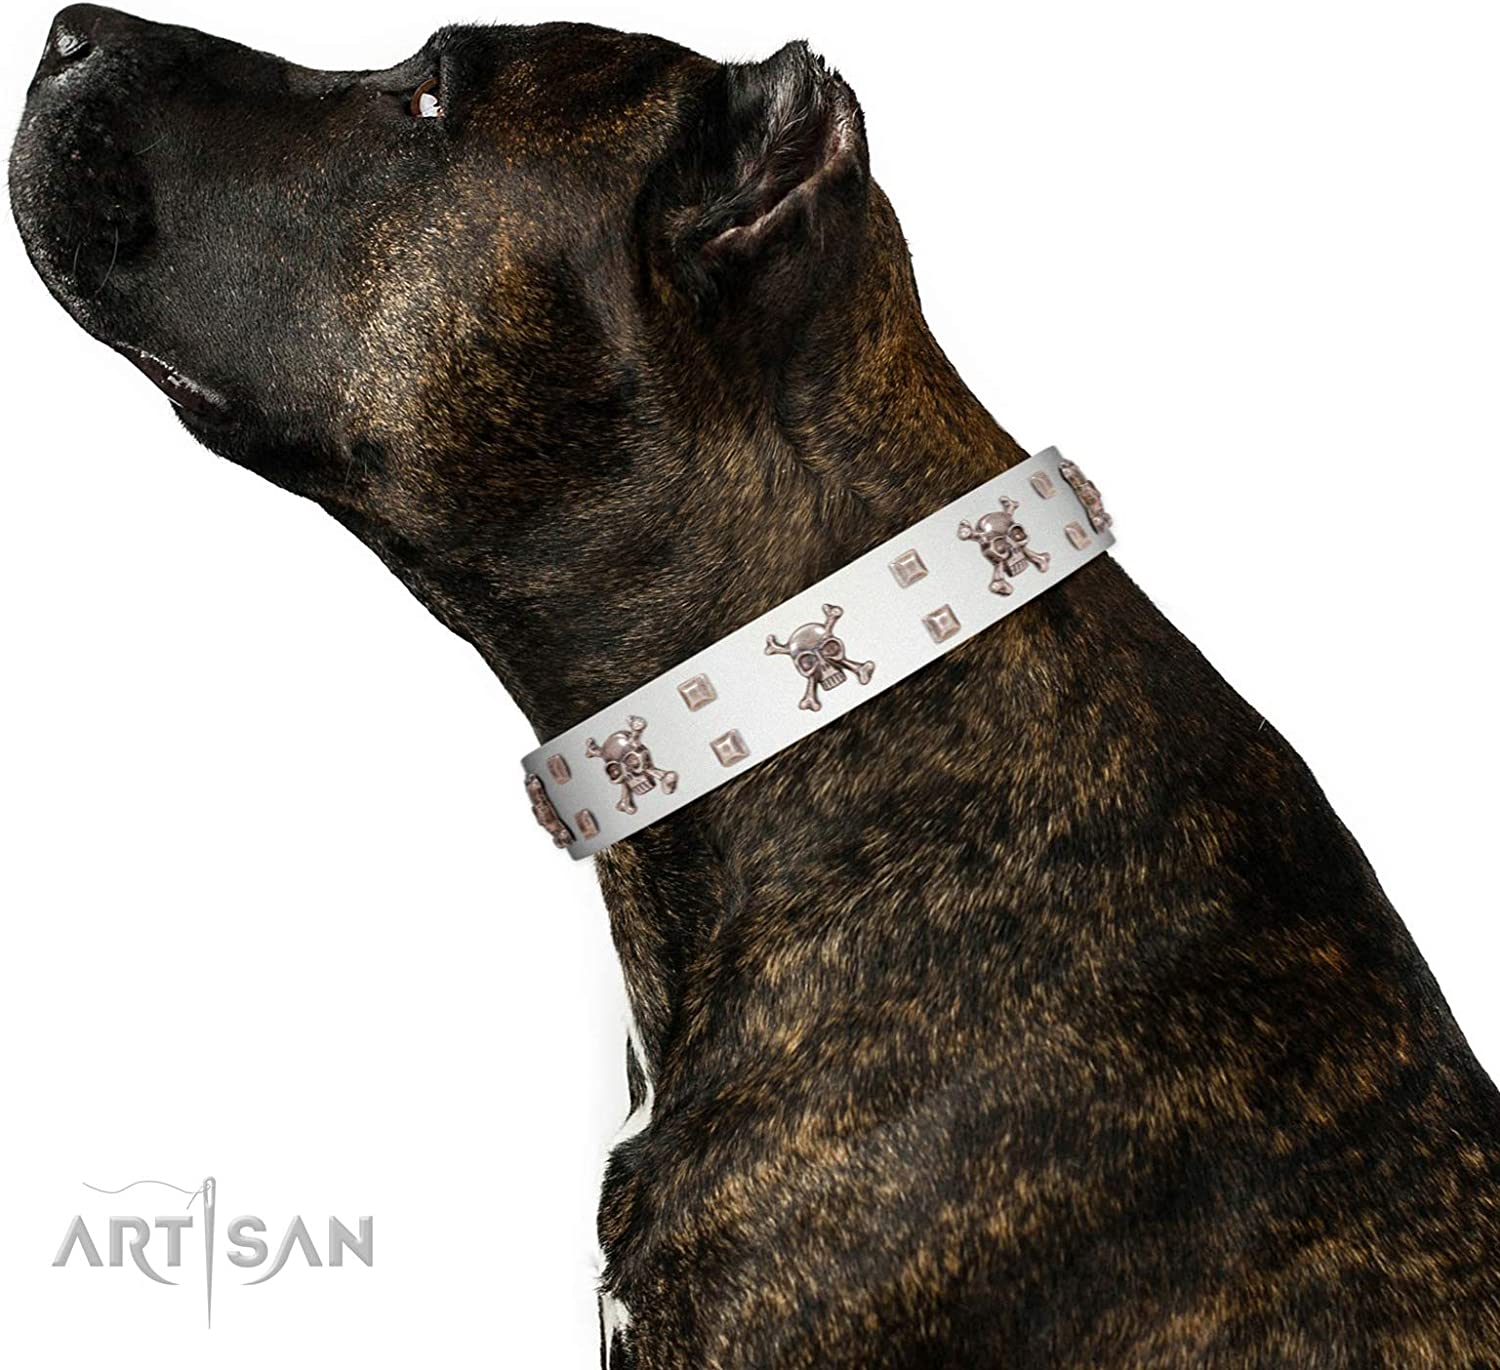 FDT Artisan 35 inch Skull Island White Leather Dog Collar with Silvery Skulls and Studs  Exclusive Handcrafted Item  1 1 2 inch (40 cm) Wide  Gift Box Included